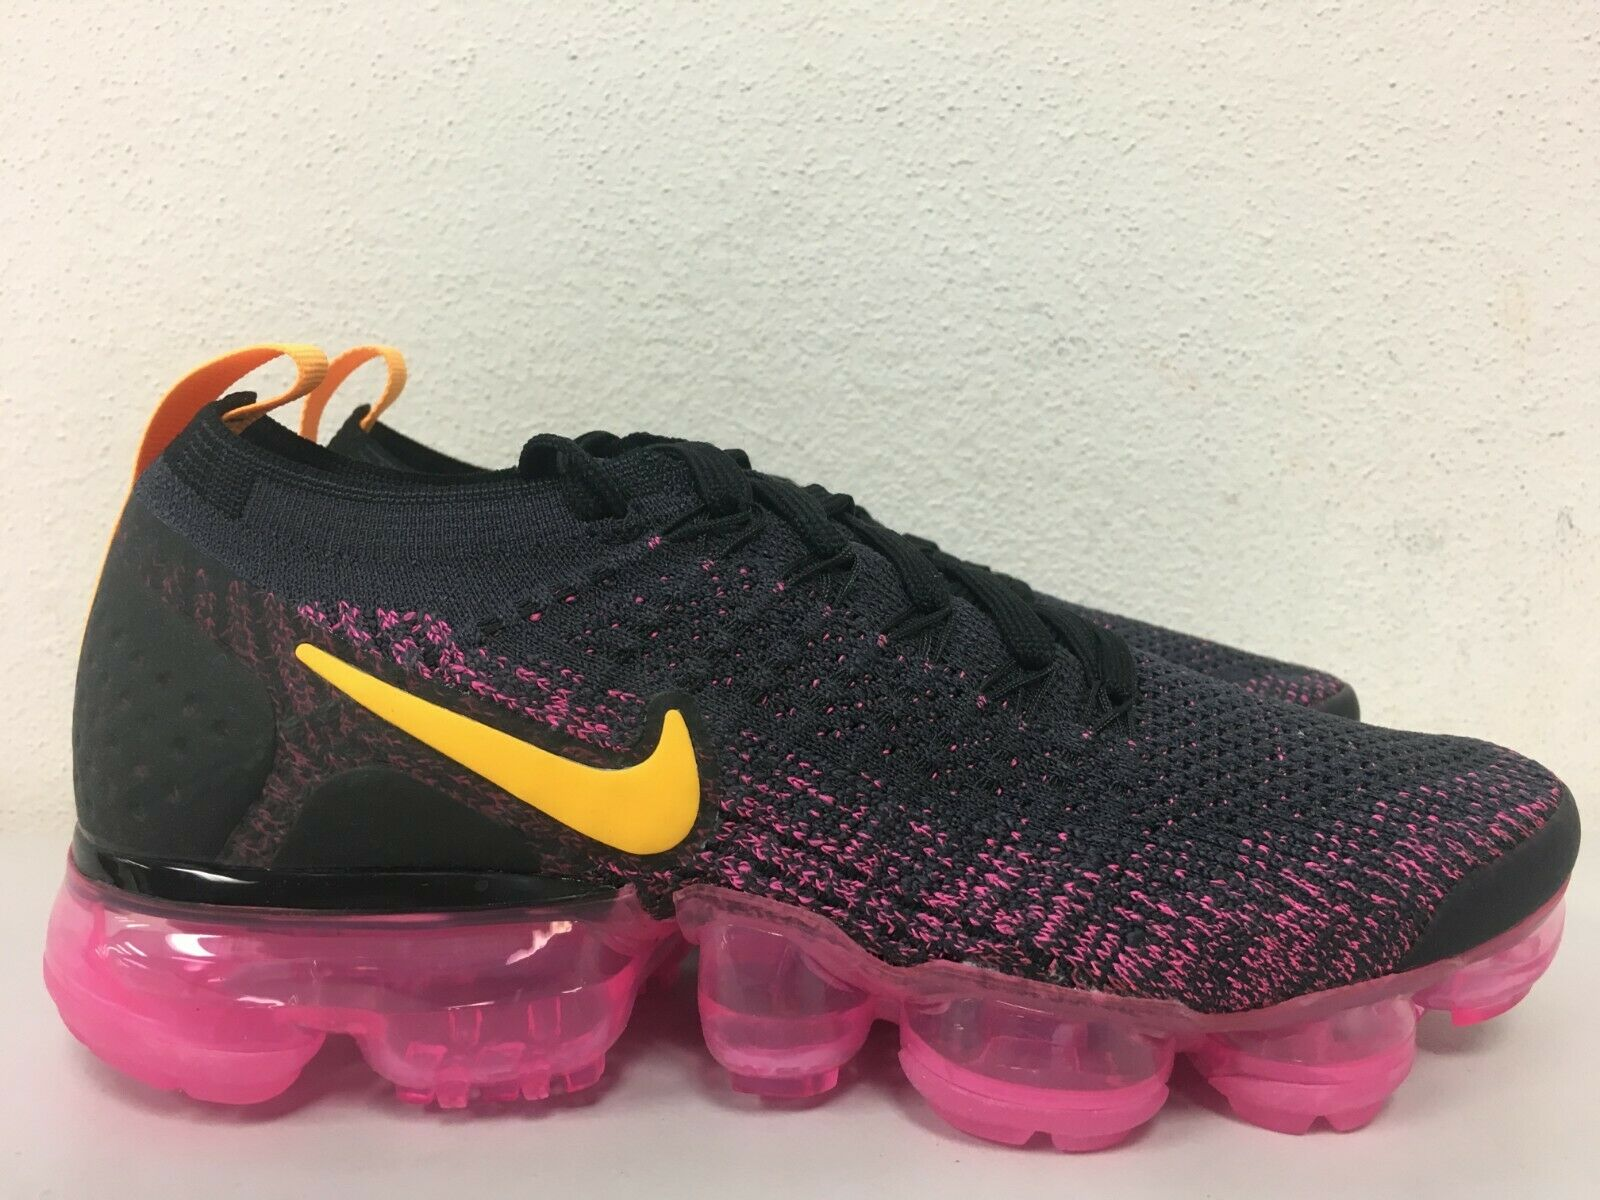 ca72cef13a1a Nike Vapormax Flyknit 2 Pink Gridiron Laser Orange 942843-008 Womens ...